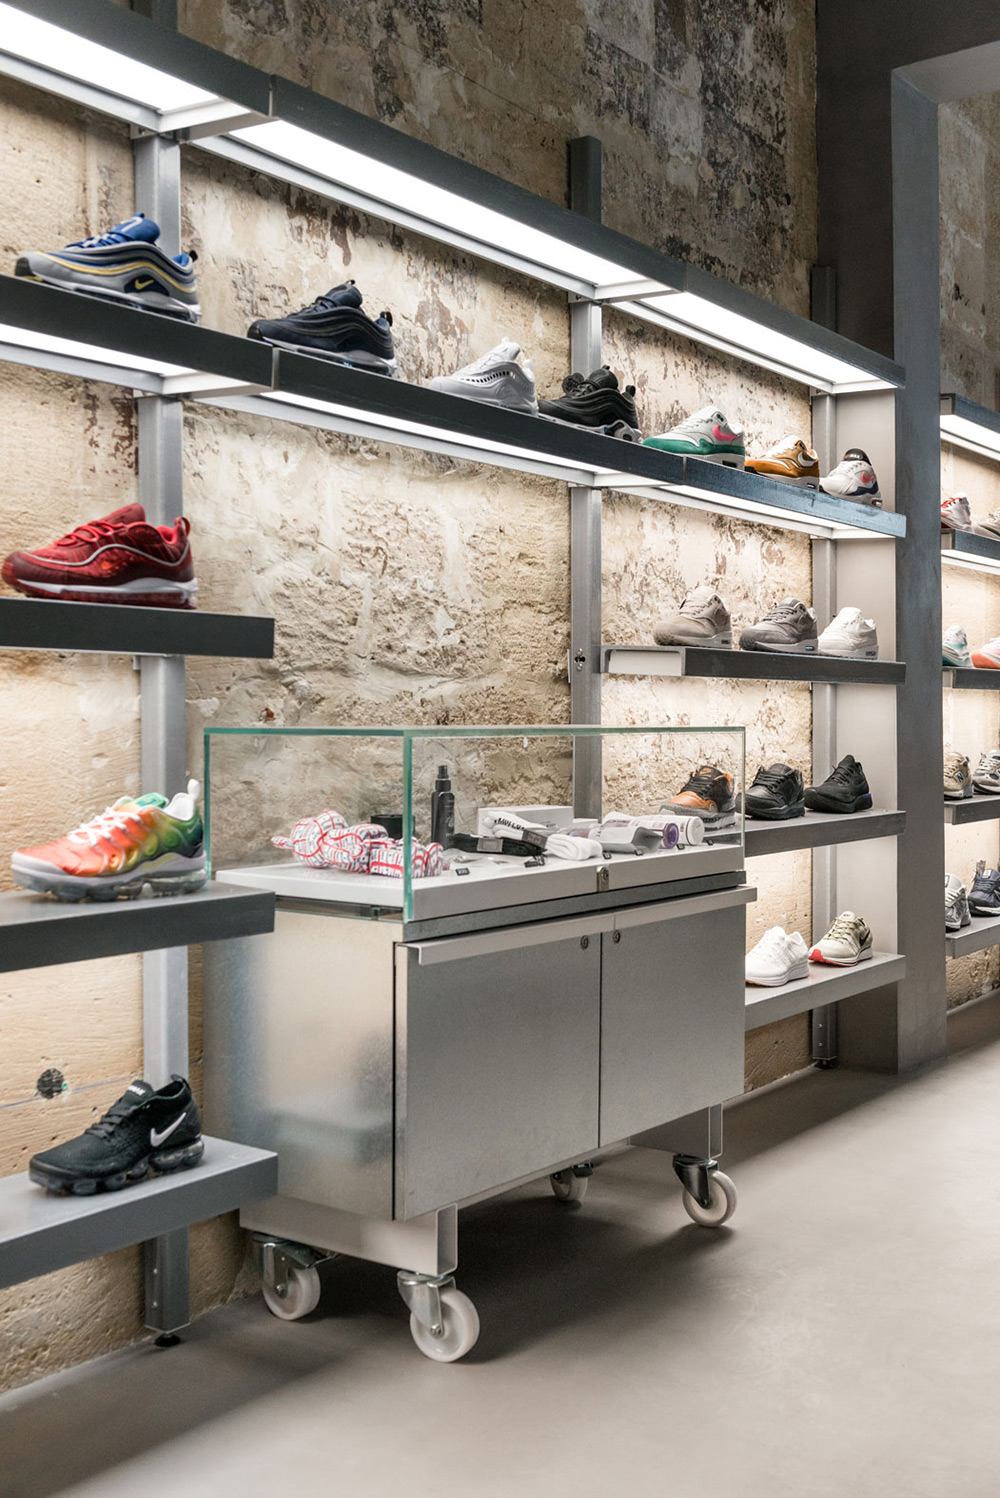 Footpatrol-Paris-Store-Images-Blog-13.jpg